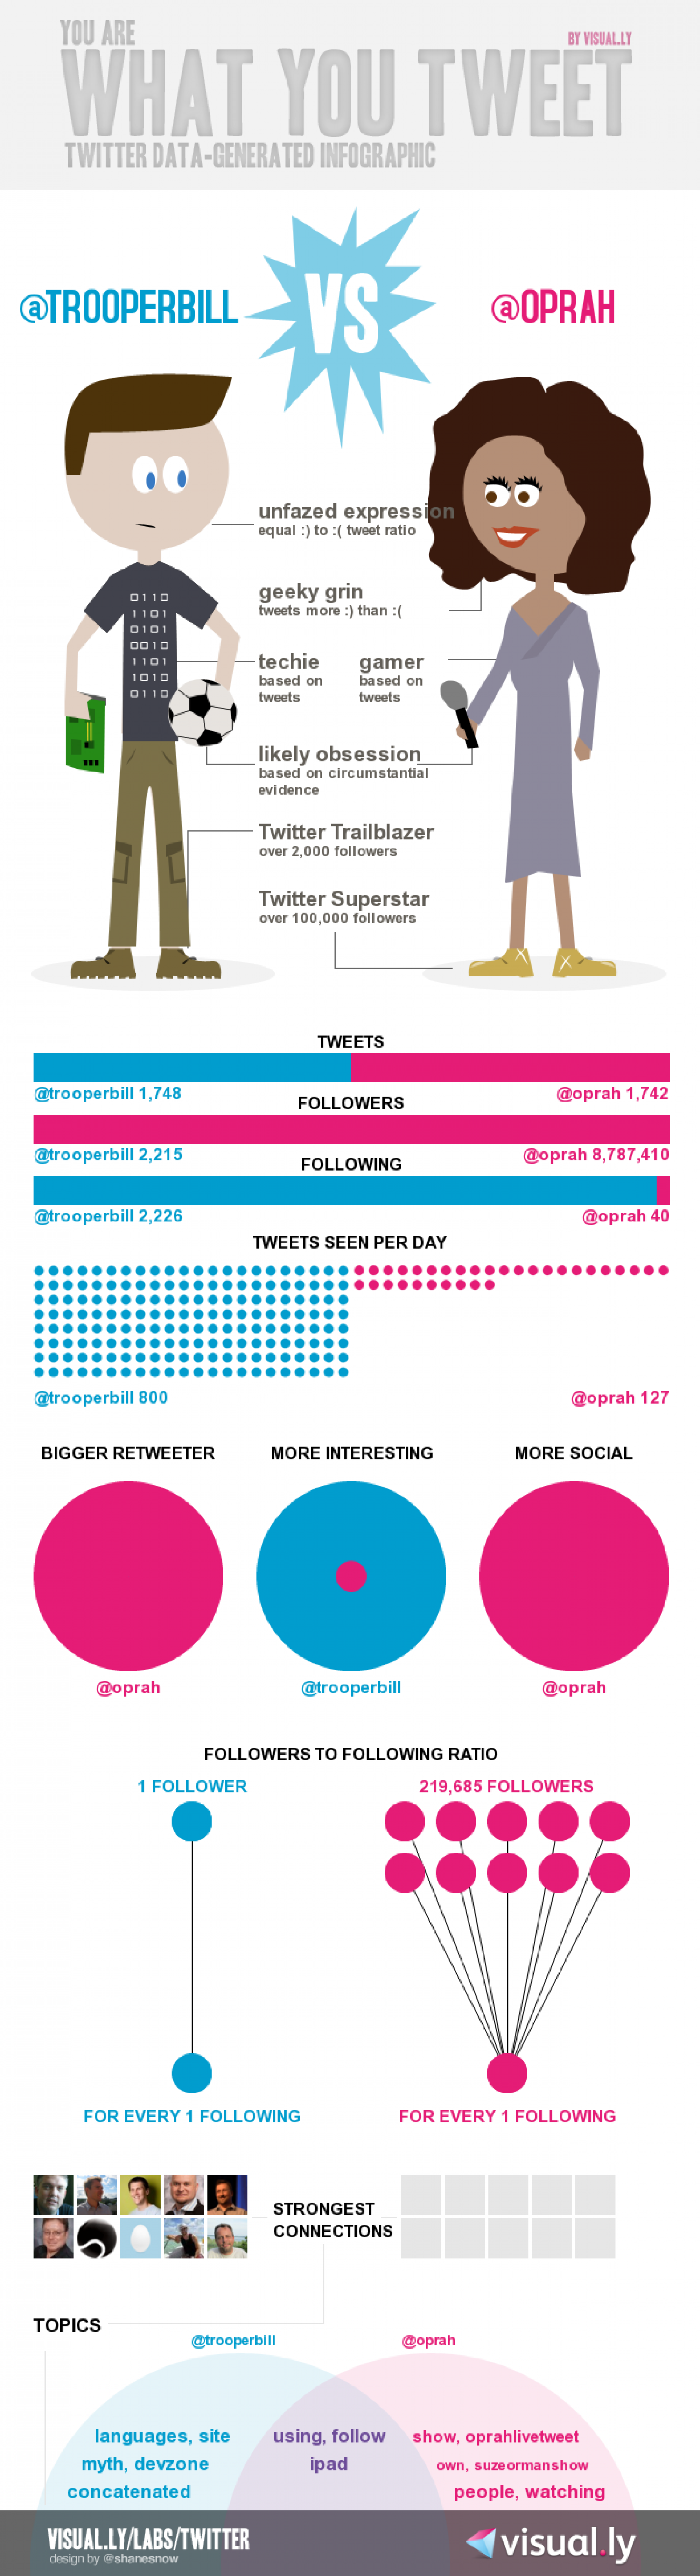 You Are What You Tweet: Twitter Data Infographic